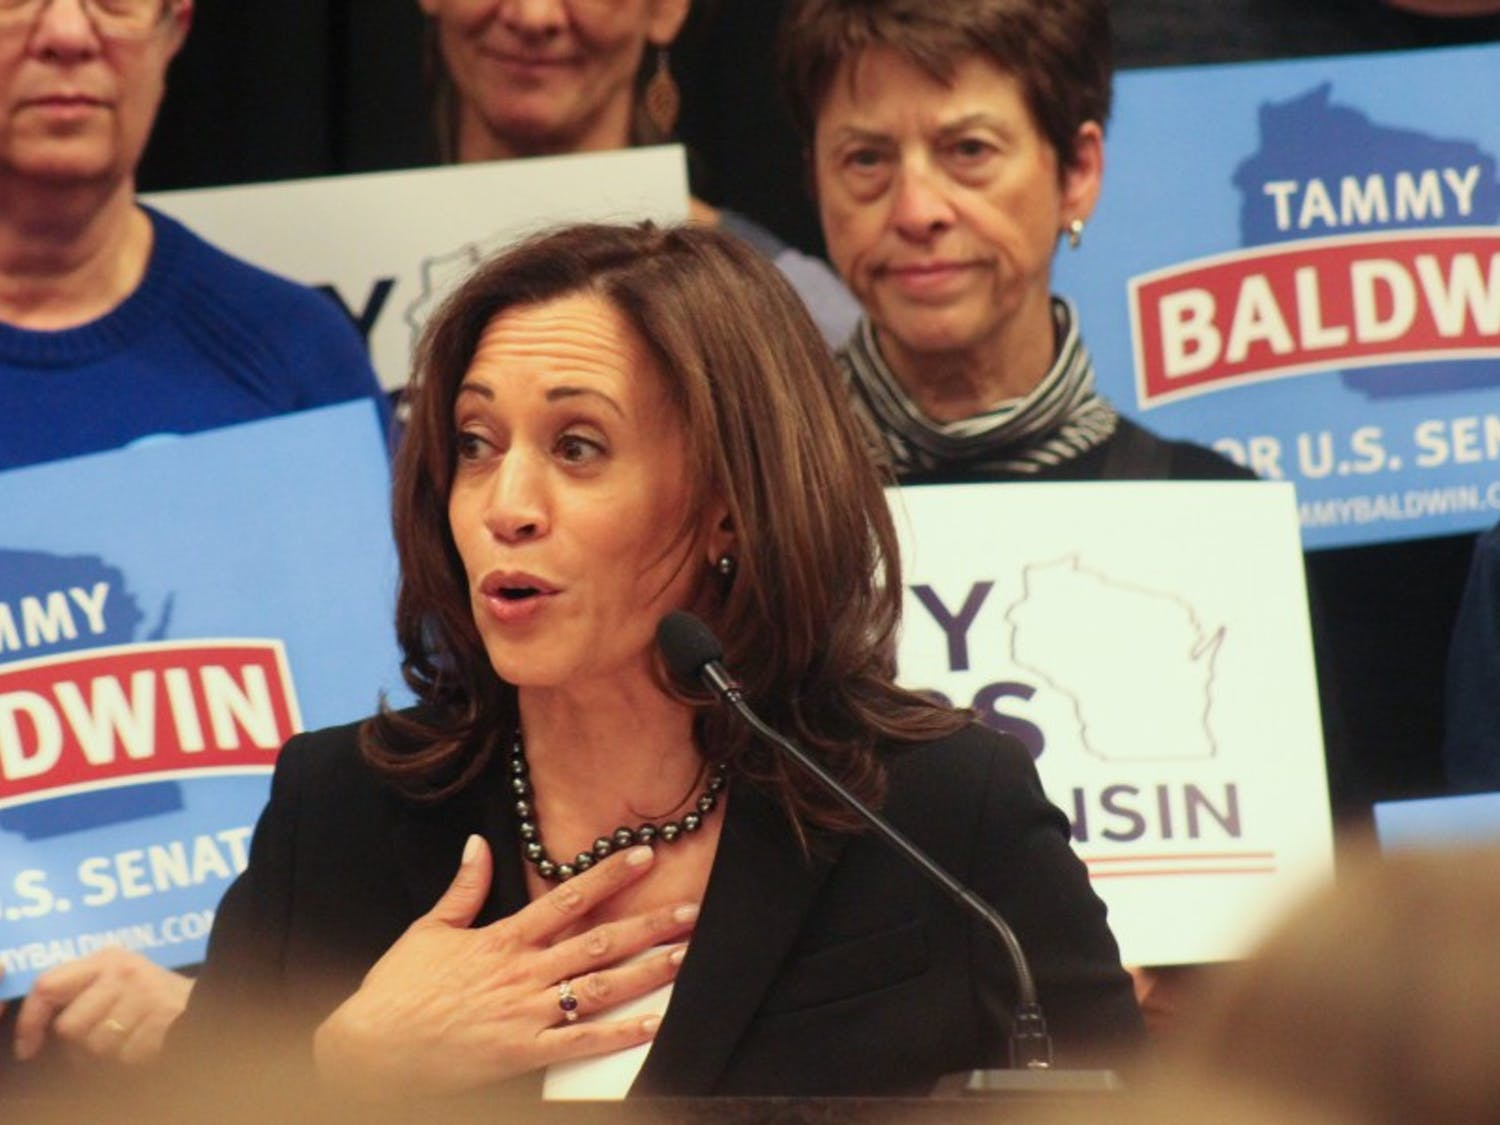 Democratic U.S. Sen. Kamala Harris of California stopped in Wisconsin on Sunday to endorse her colleague Tammy Baldwin for Senate, as well as support Tony Evers' bid for the governorship.